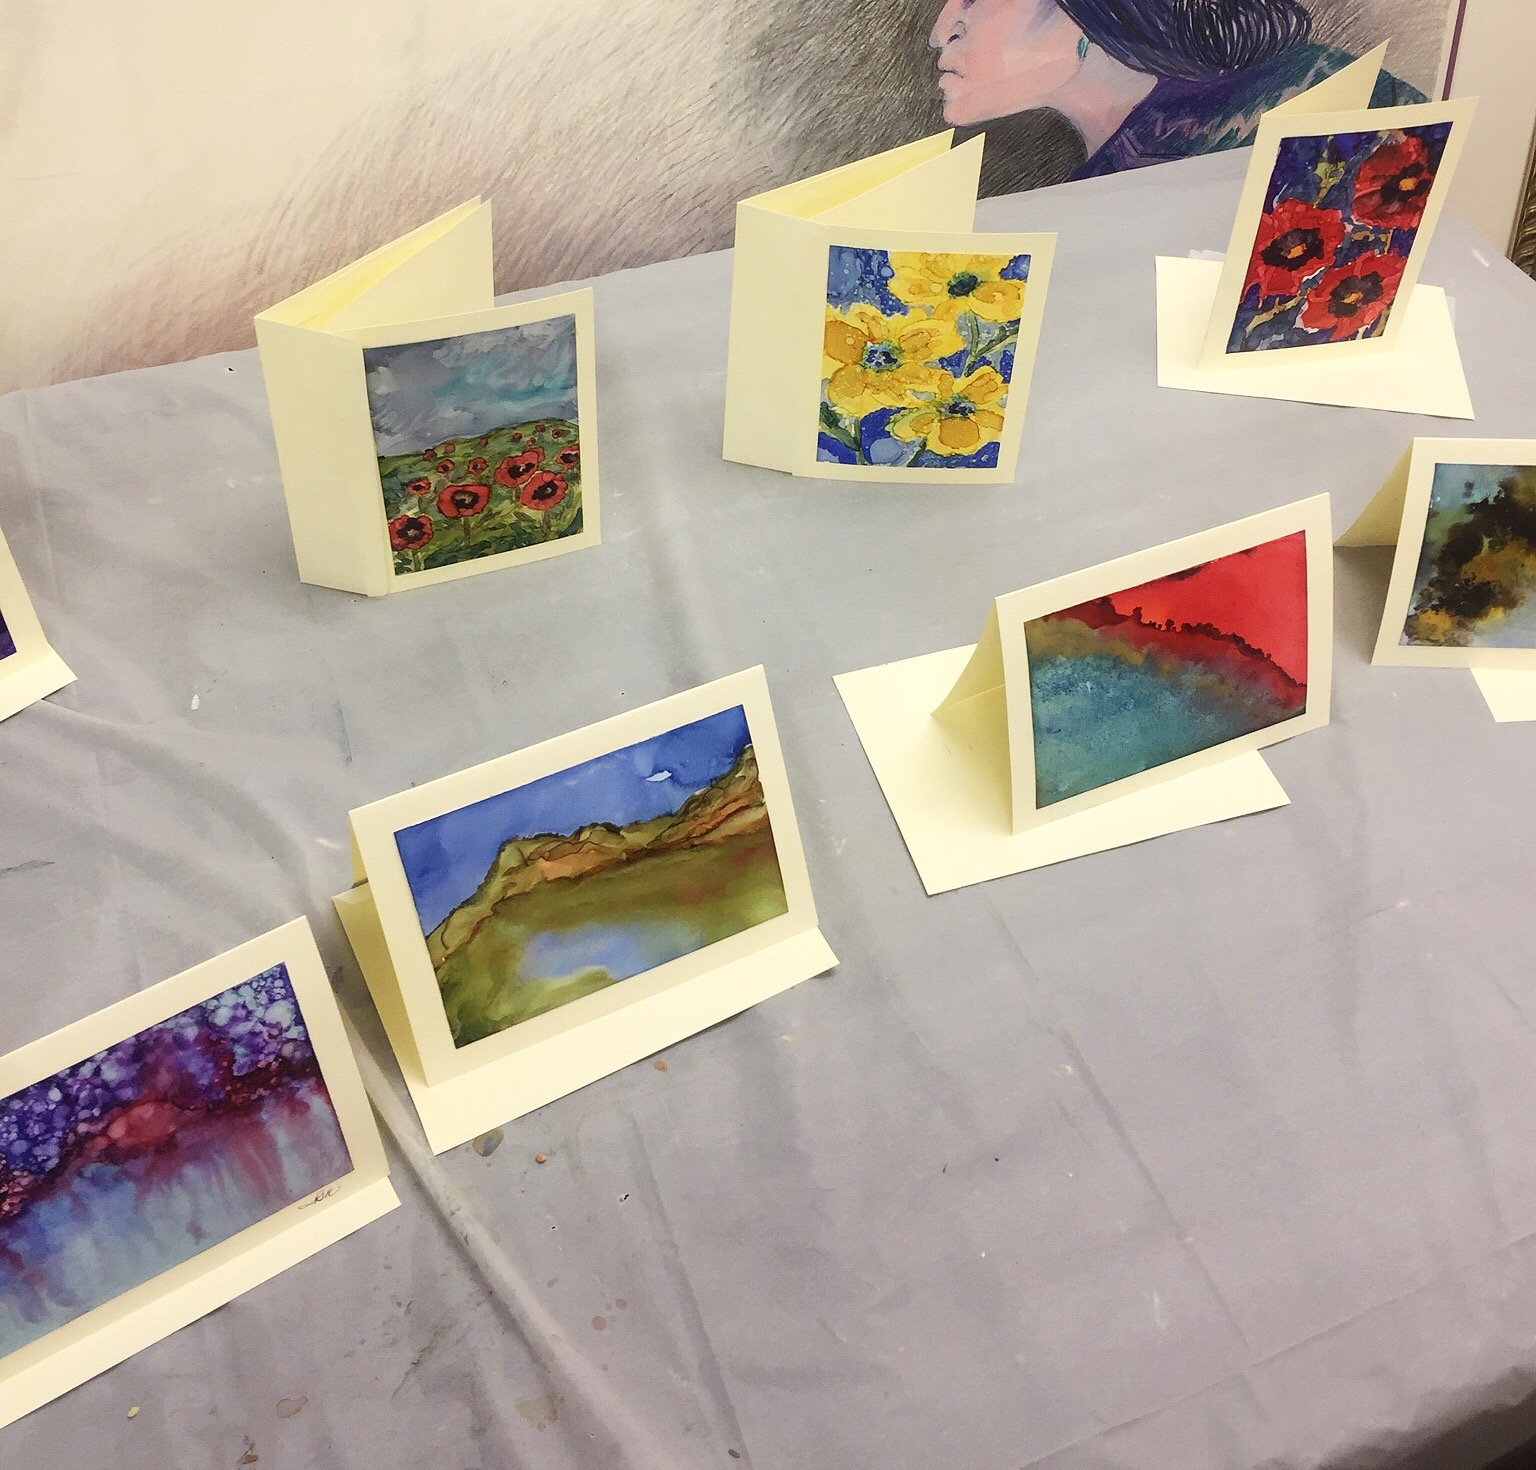 Alcohol ink greeting cards created by instructor, Lynda Kingsley.